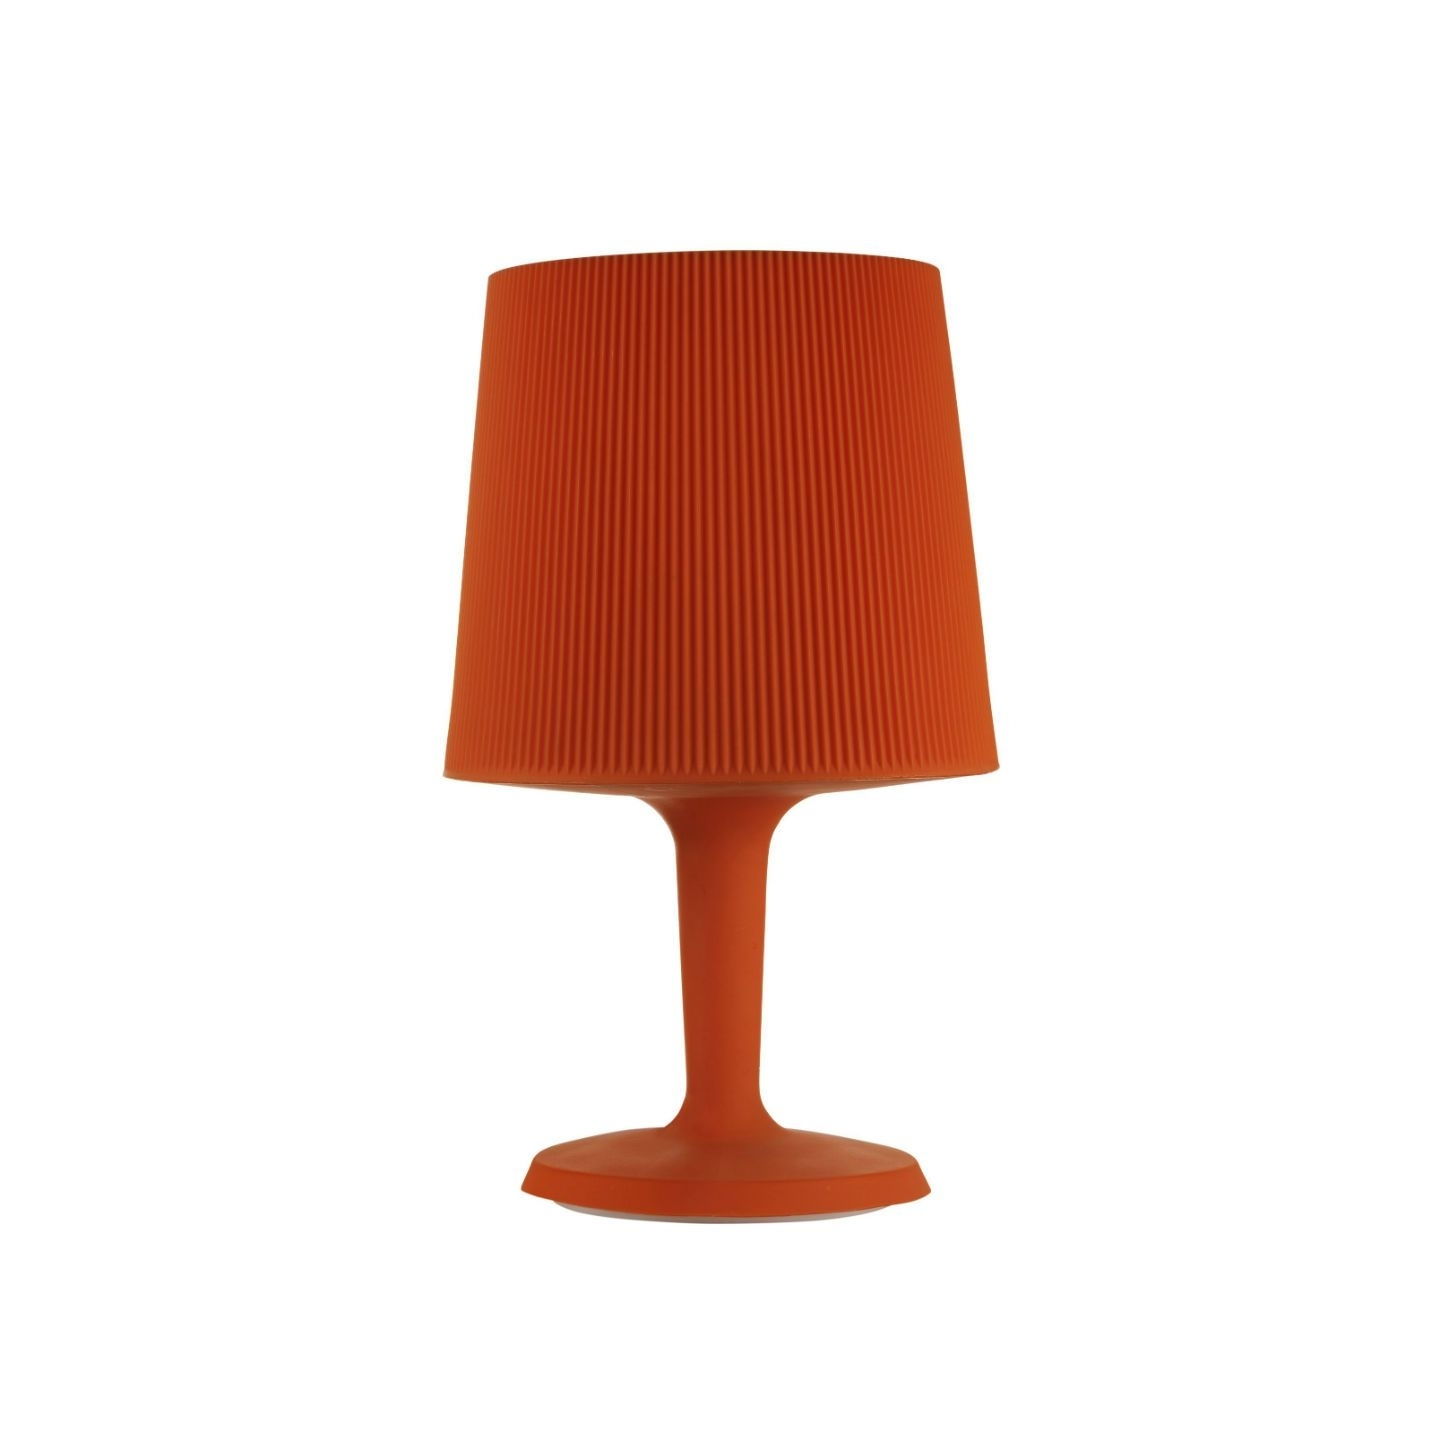 Metalarte Inout Table Lamp Small Of Outdoor Red 747800031, Small Within Latest Red Outdoor Table Lanterns (View 6 of 20)